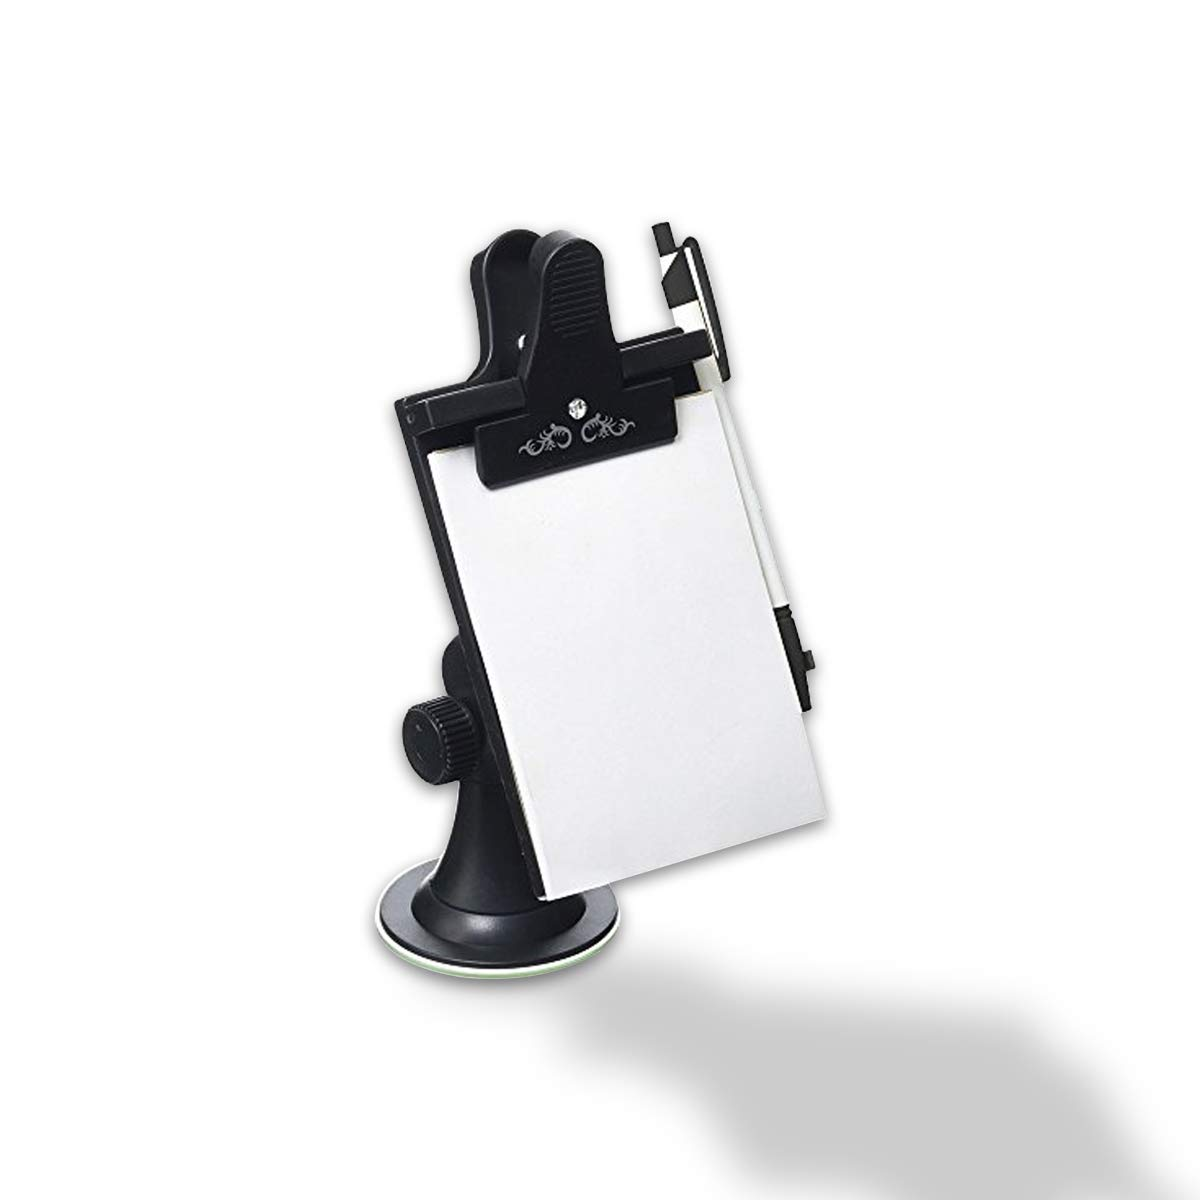 VaygWay Car Note Pad Holder-Windshield Dashboard Memo Pad Lists- Driving Suction Adjustable Notebook Holder